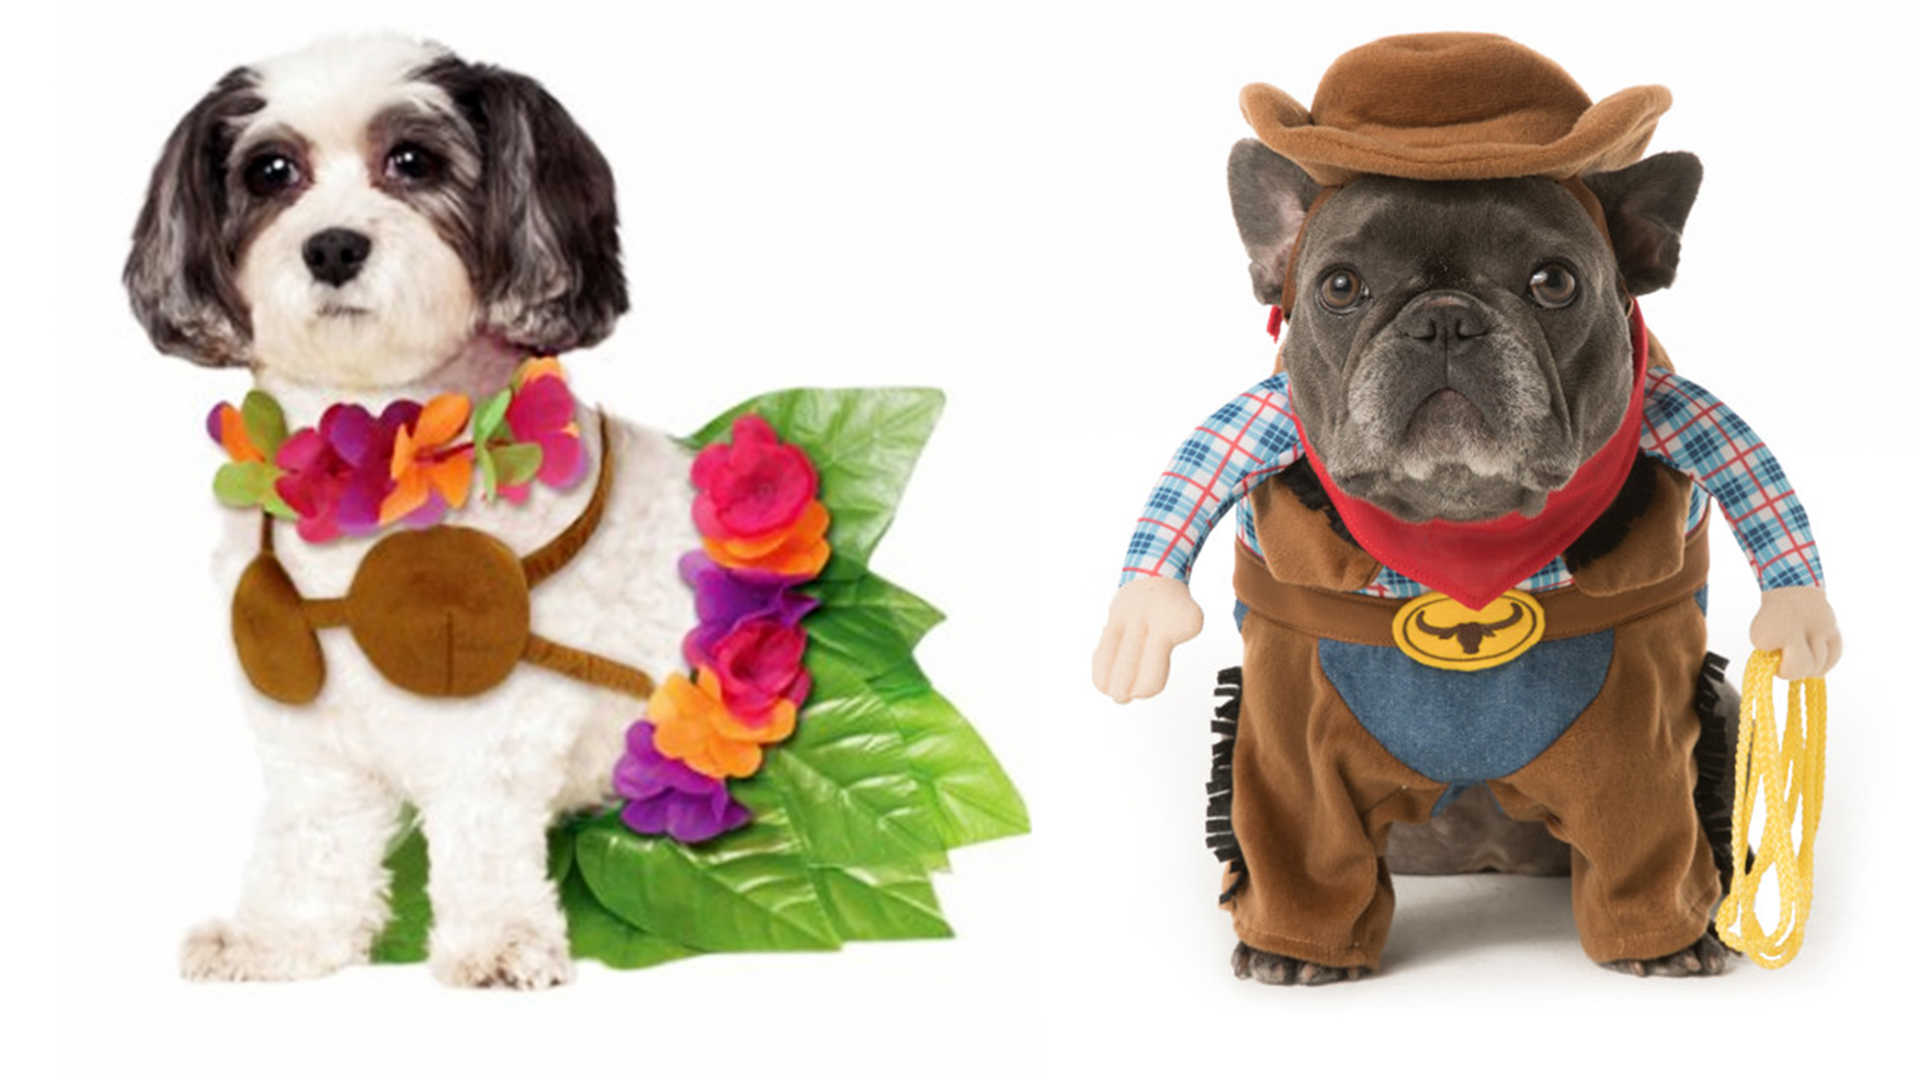 Halloween dog costume ideas 32 easy, cute costumes for your